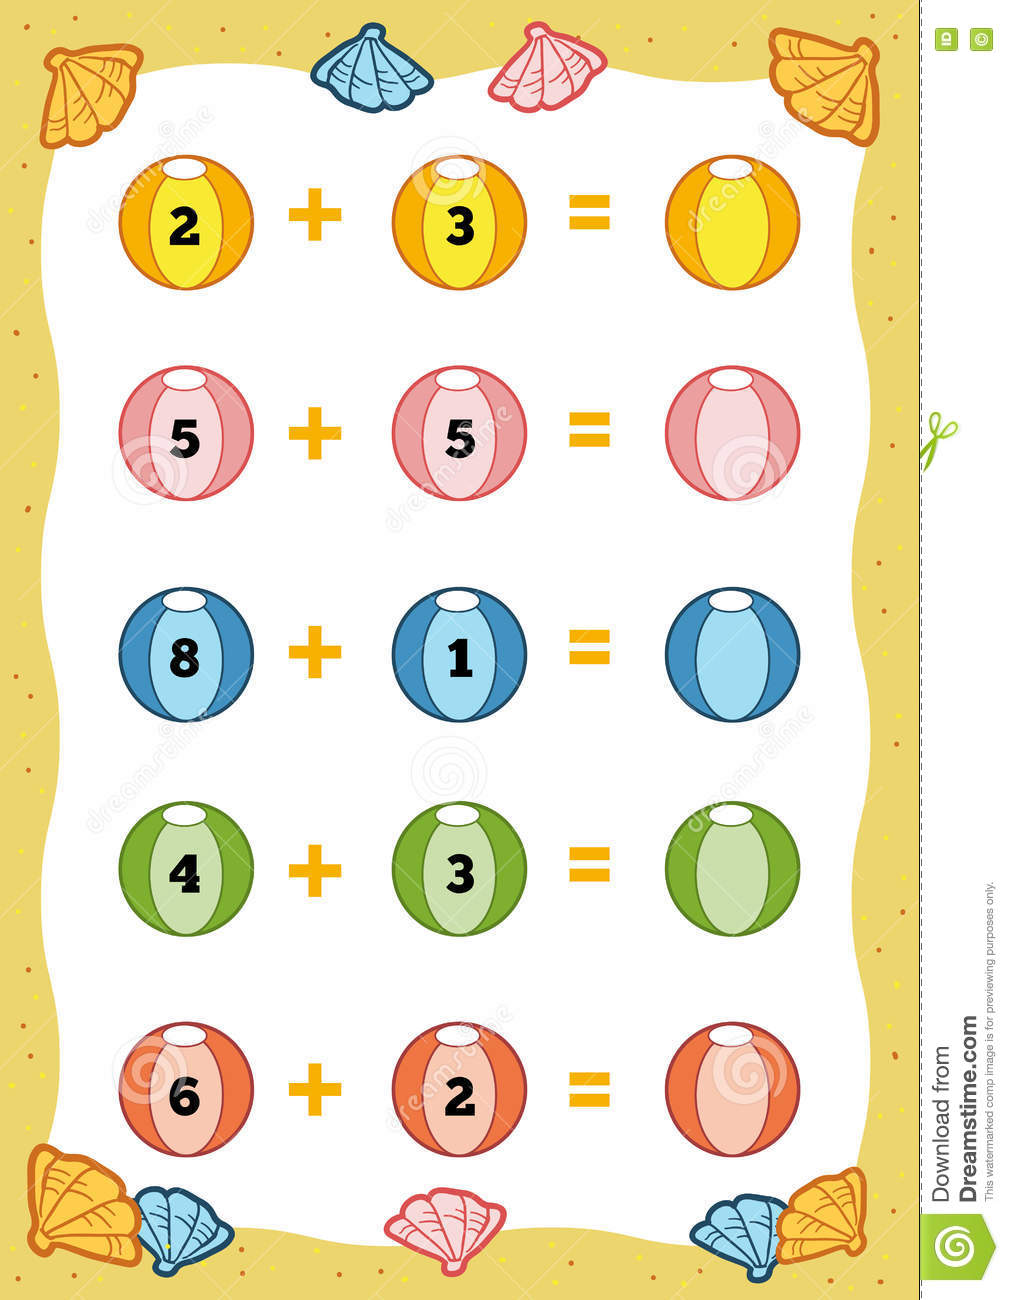 hight resolution of Counting Educational Game For Children. Addition Worksheets Stock Vector -  Illustration of group